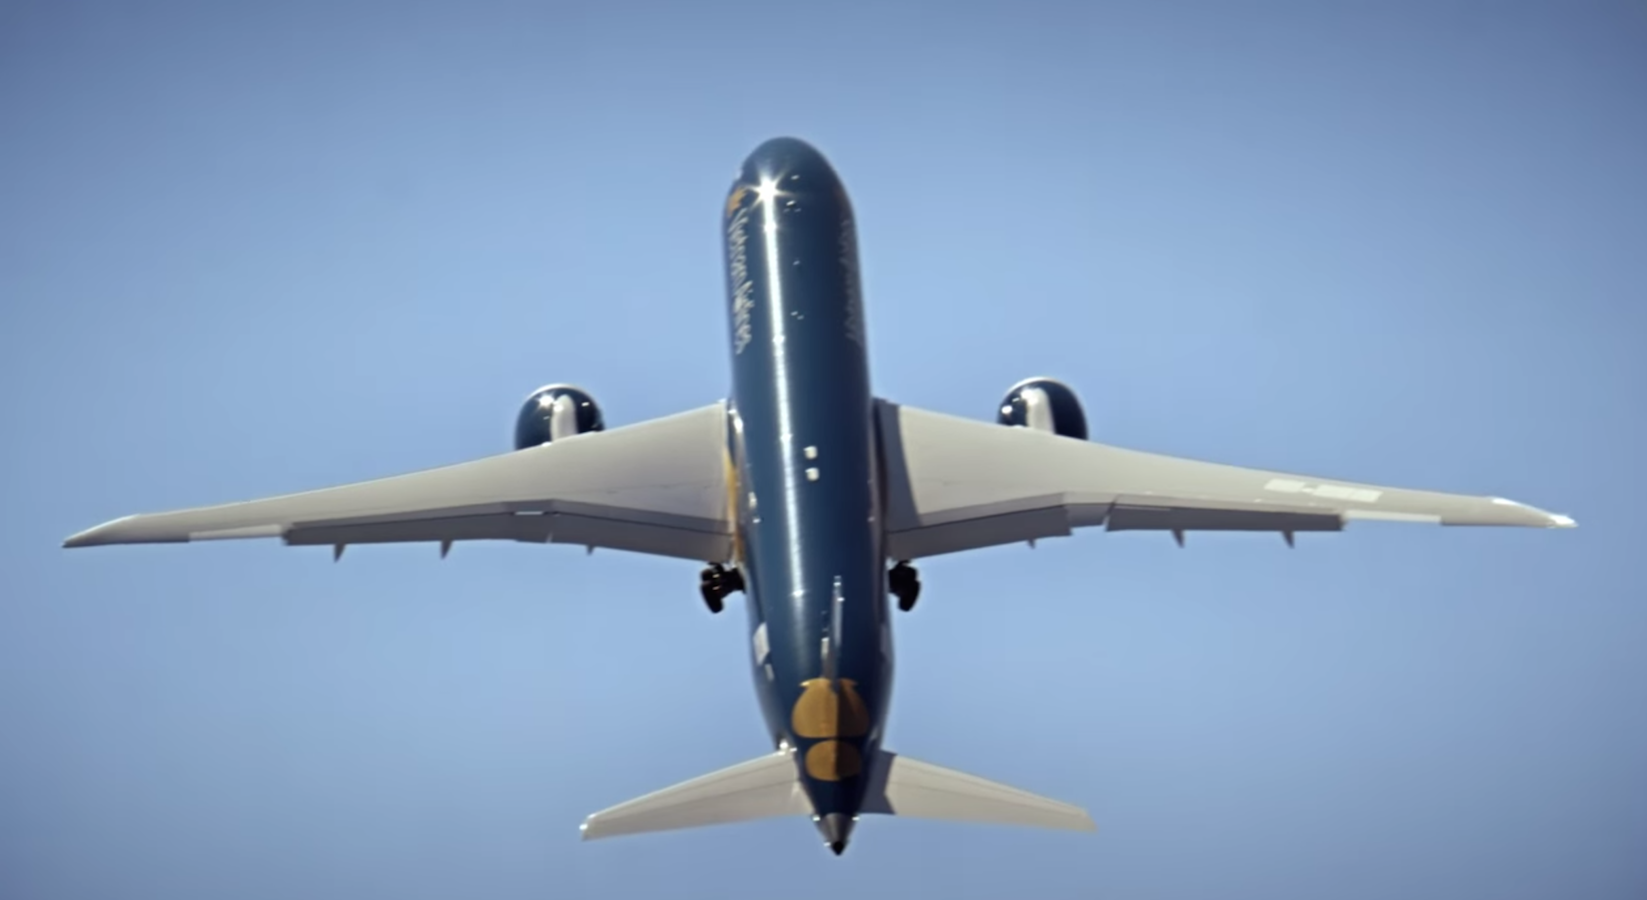 Boeing Dreamliner does an almost vertical ascent